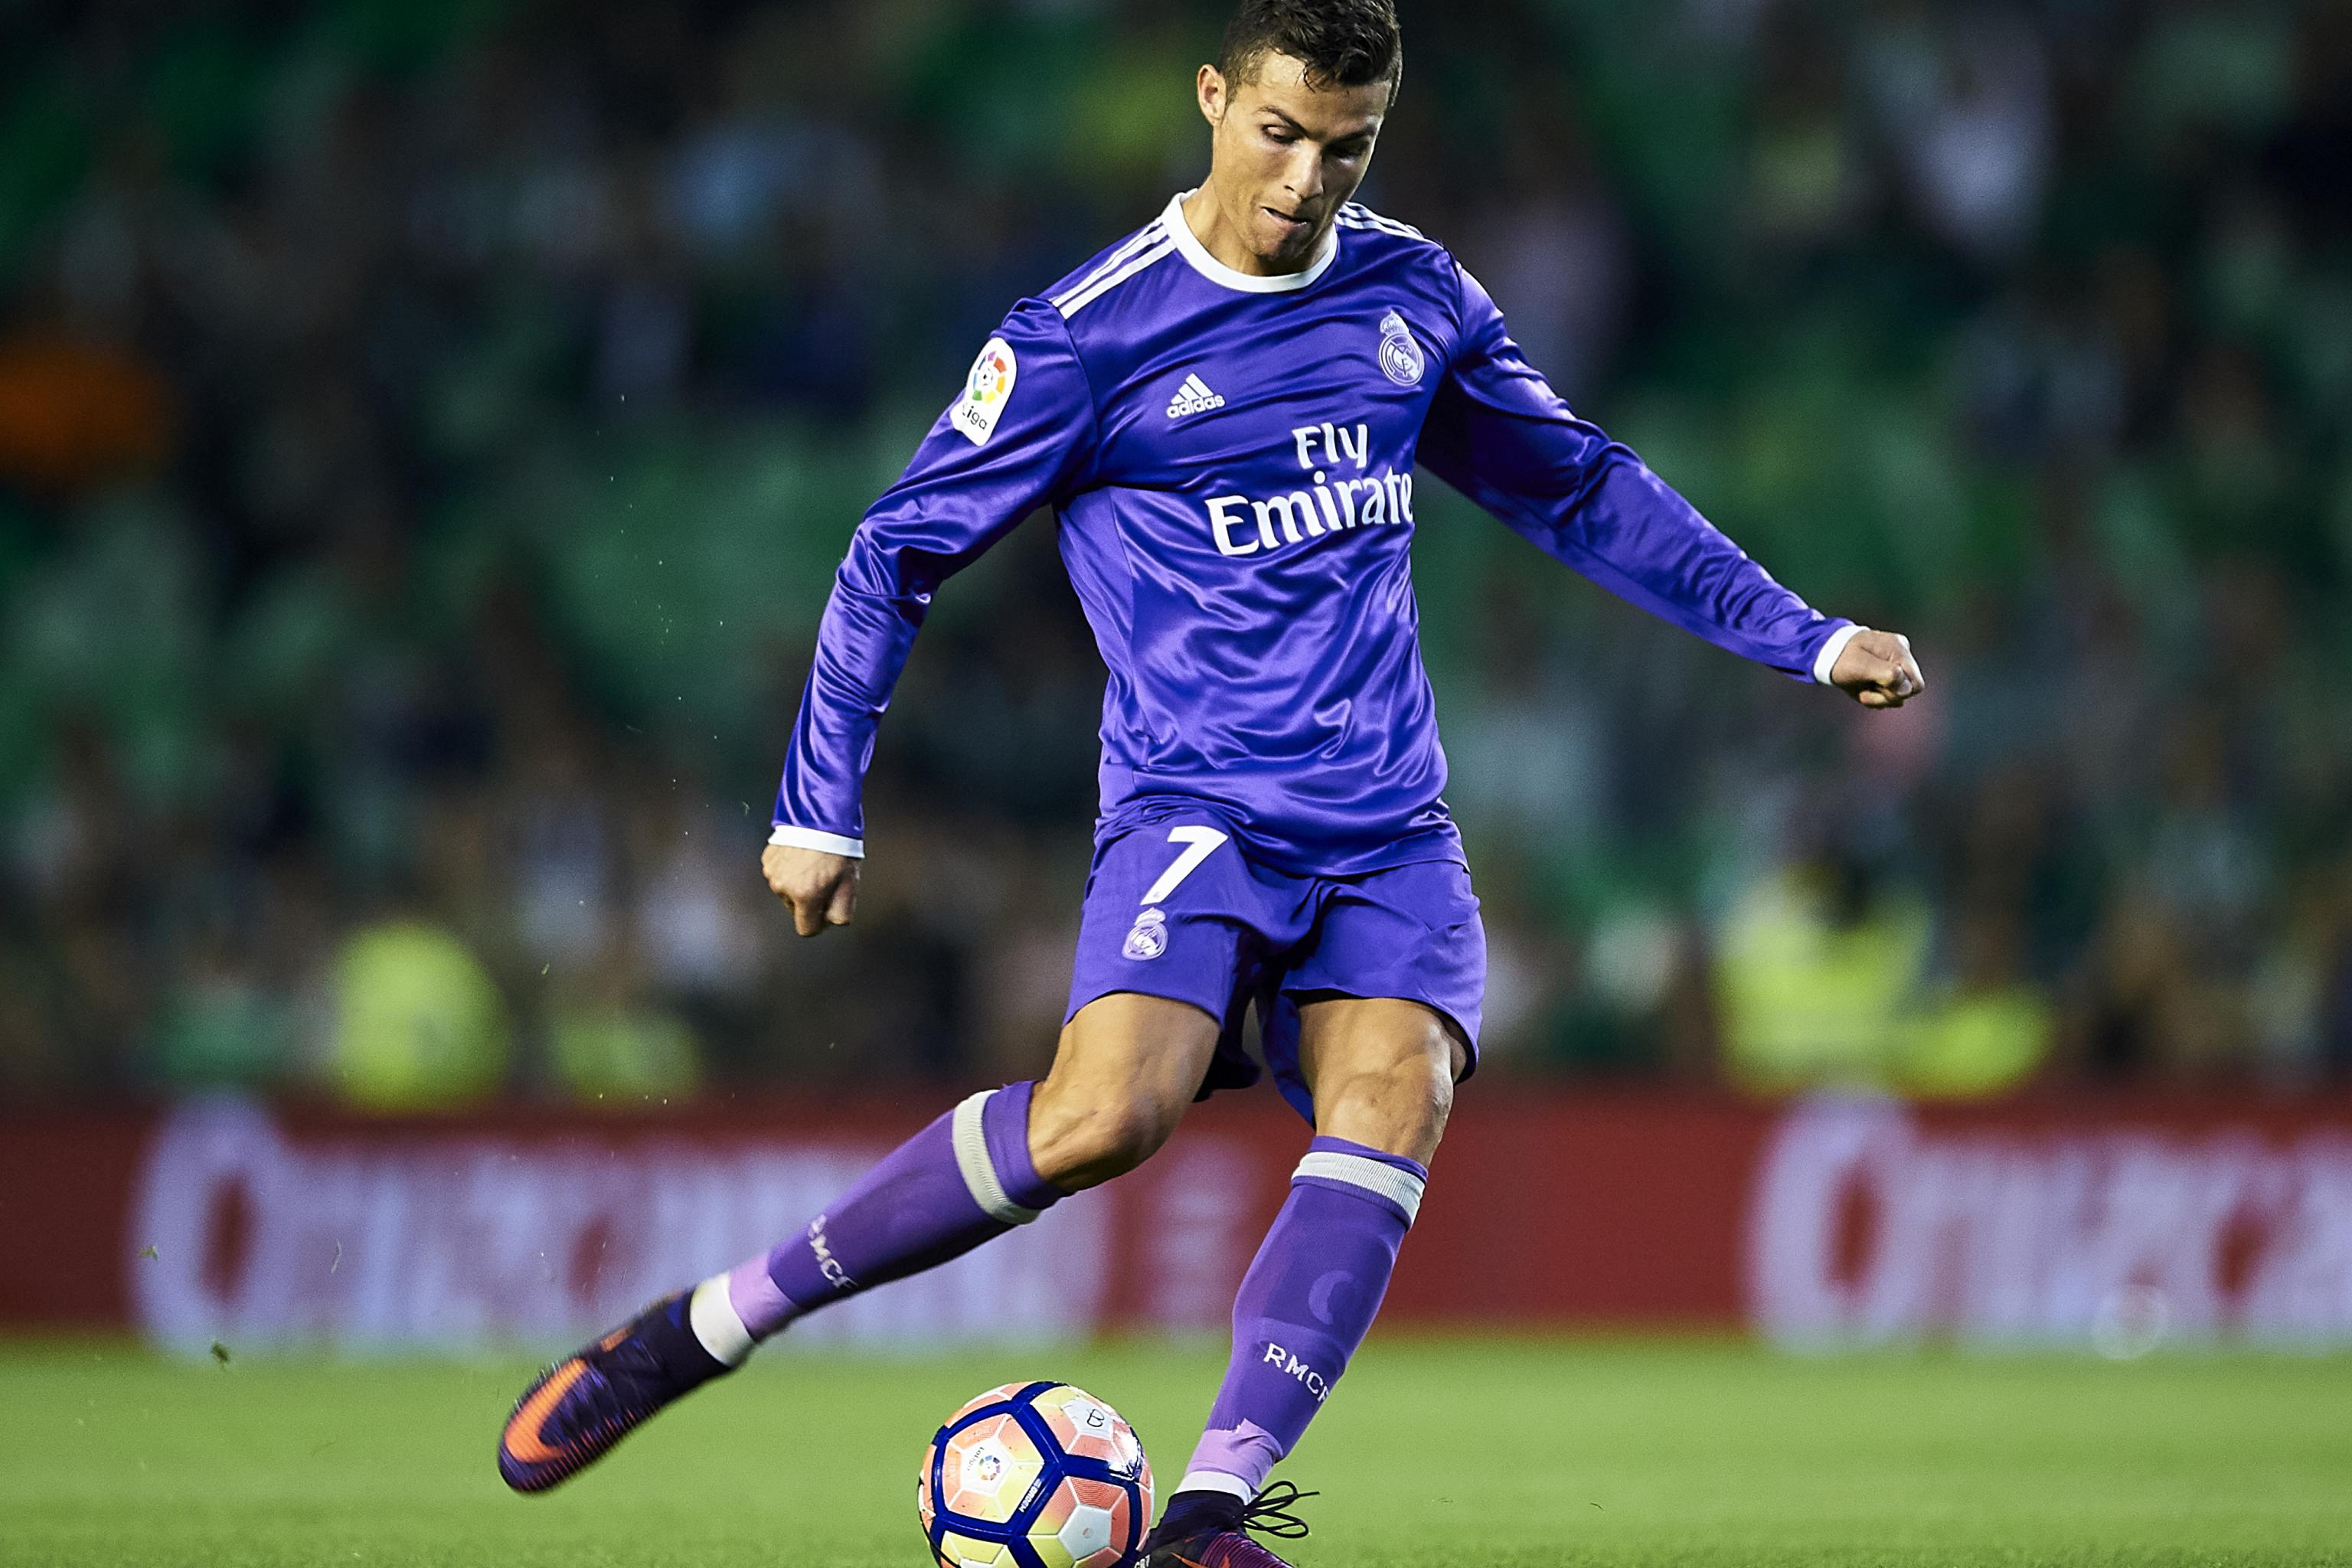 Shot Analysis Of Real Madrid S Cristiano Ronaldo Bleacher Report Latest News Videos And Highlights